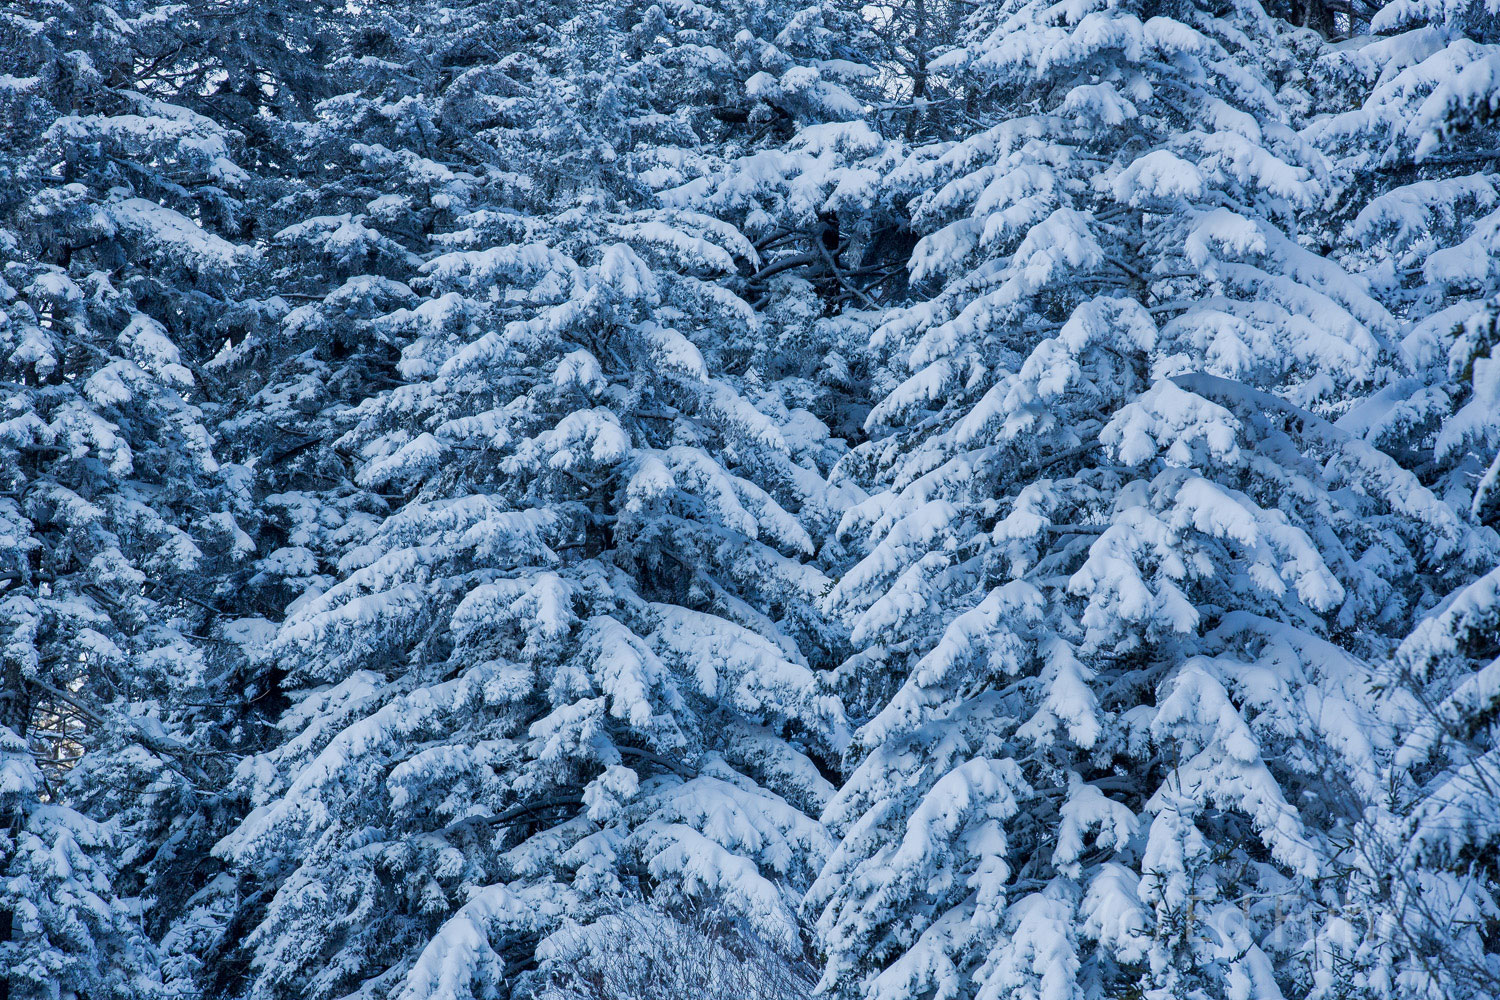 Snow covers the boughs of these evergreens.